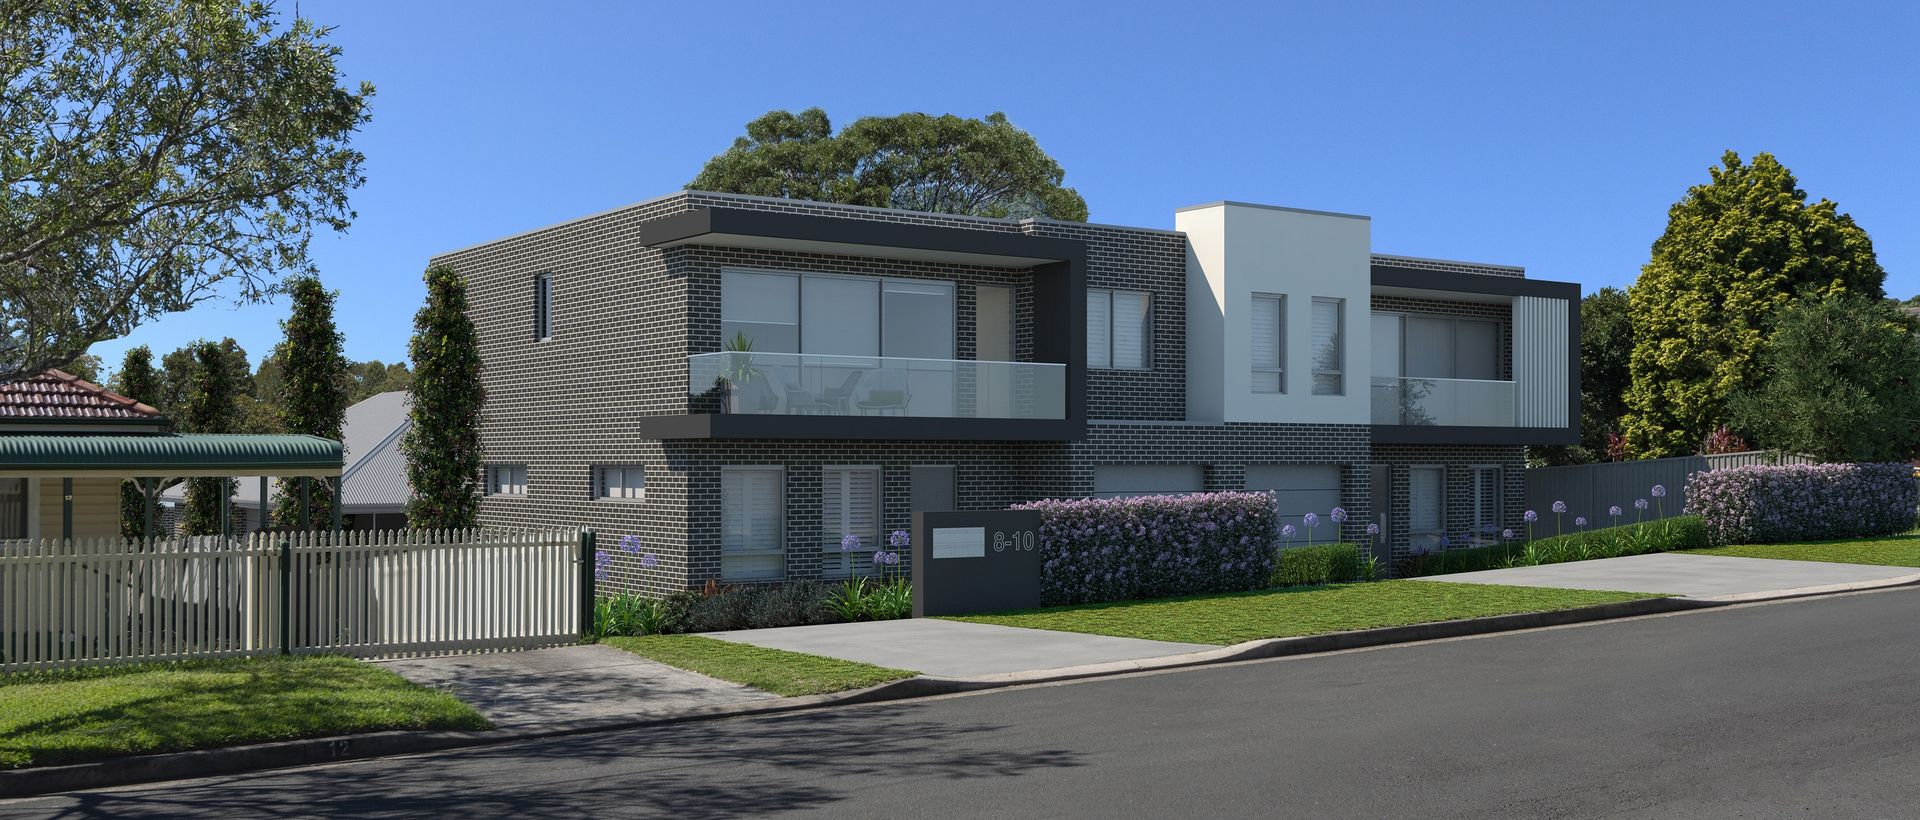 2/8-10 Rowland Street, Revesby NSW 2212, Image 0